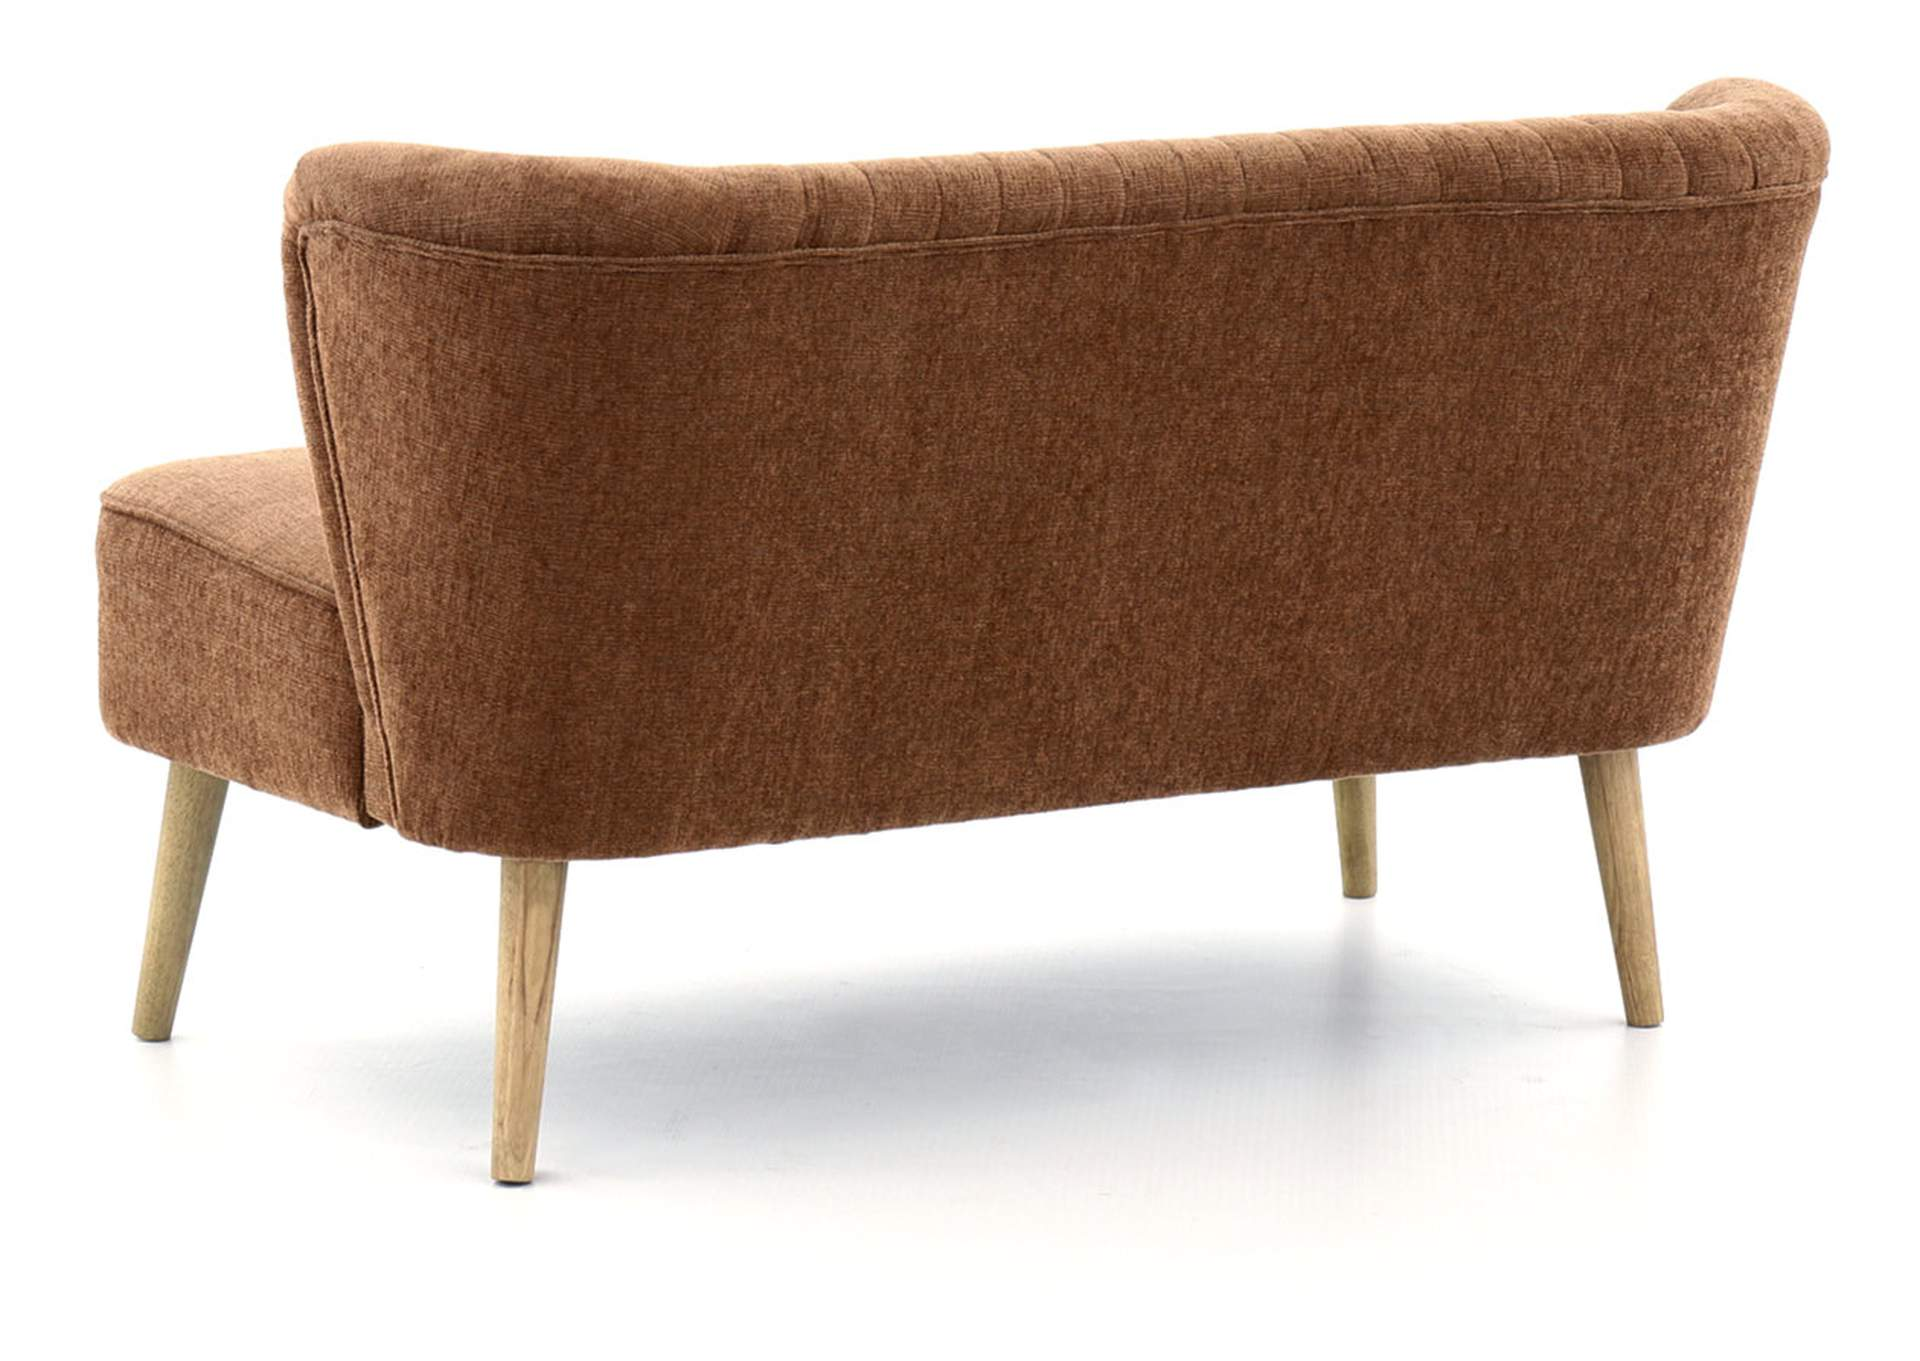 Collbury Accent Bench,Signature Design By Ashley